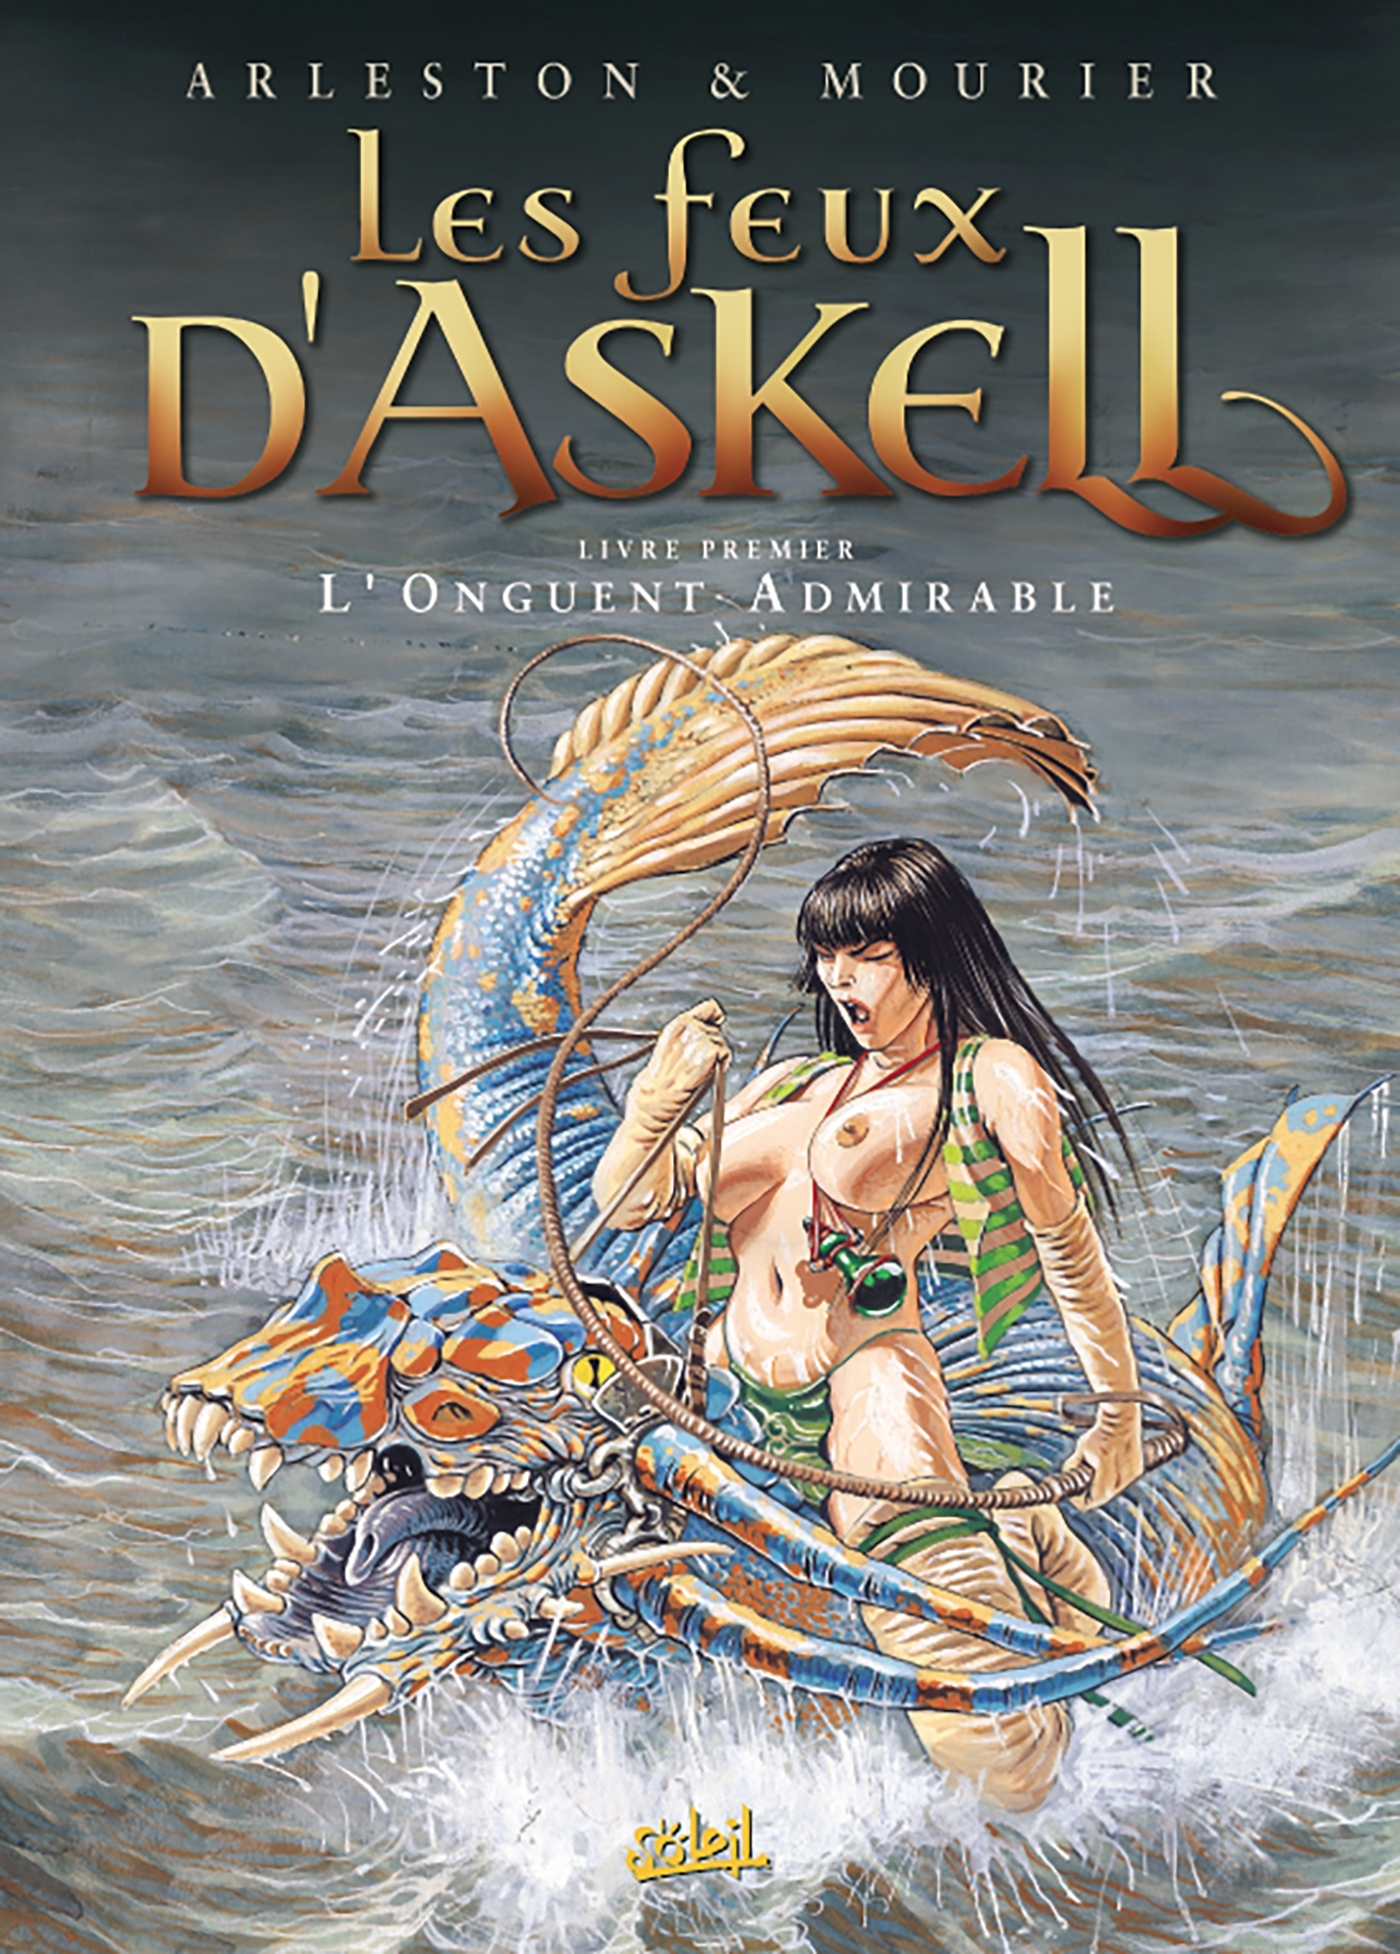 LES FEUX D'ASKELL - TOME 1 -  L'ONGUENT ADMIRABLE